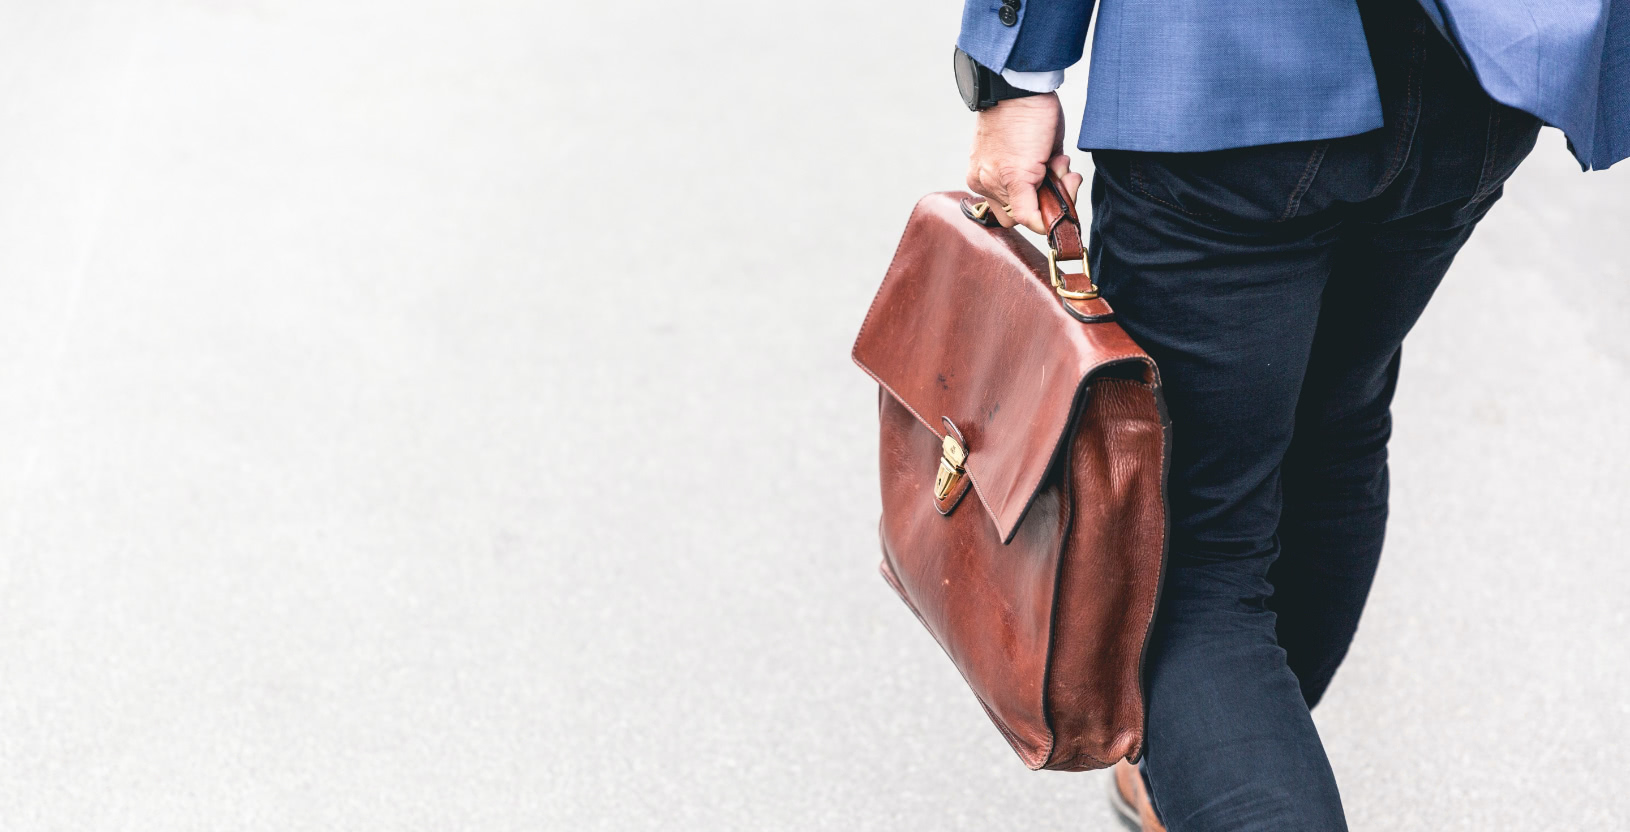 Insurance broker walking holding a brown leather bag